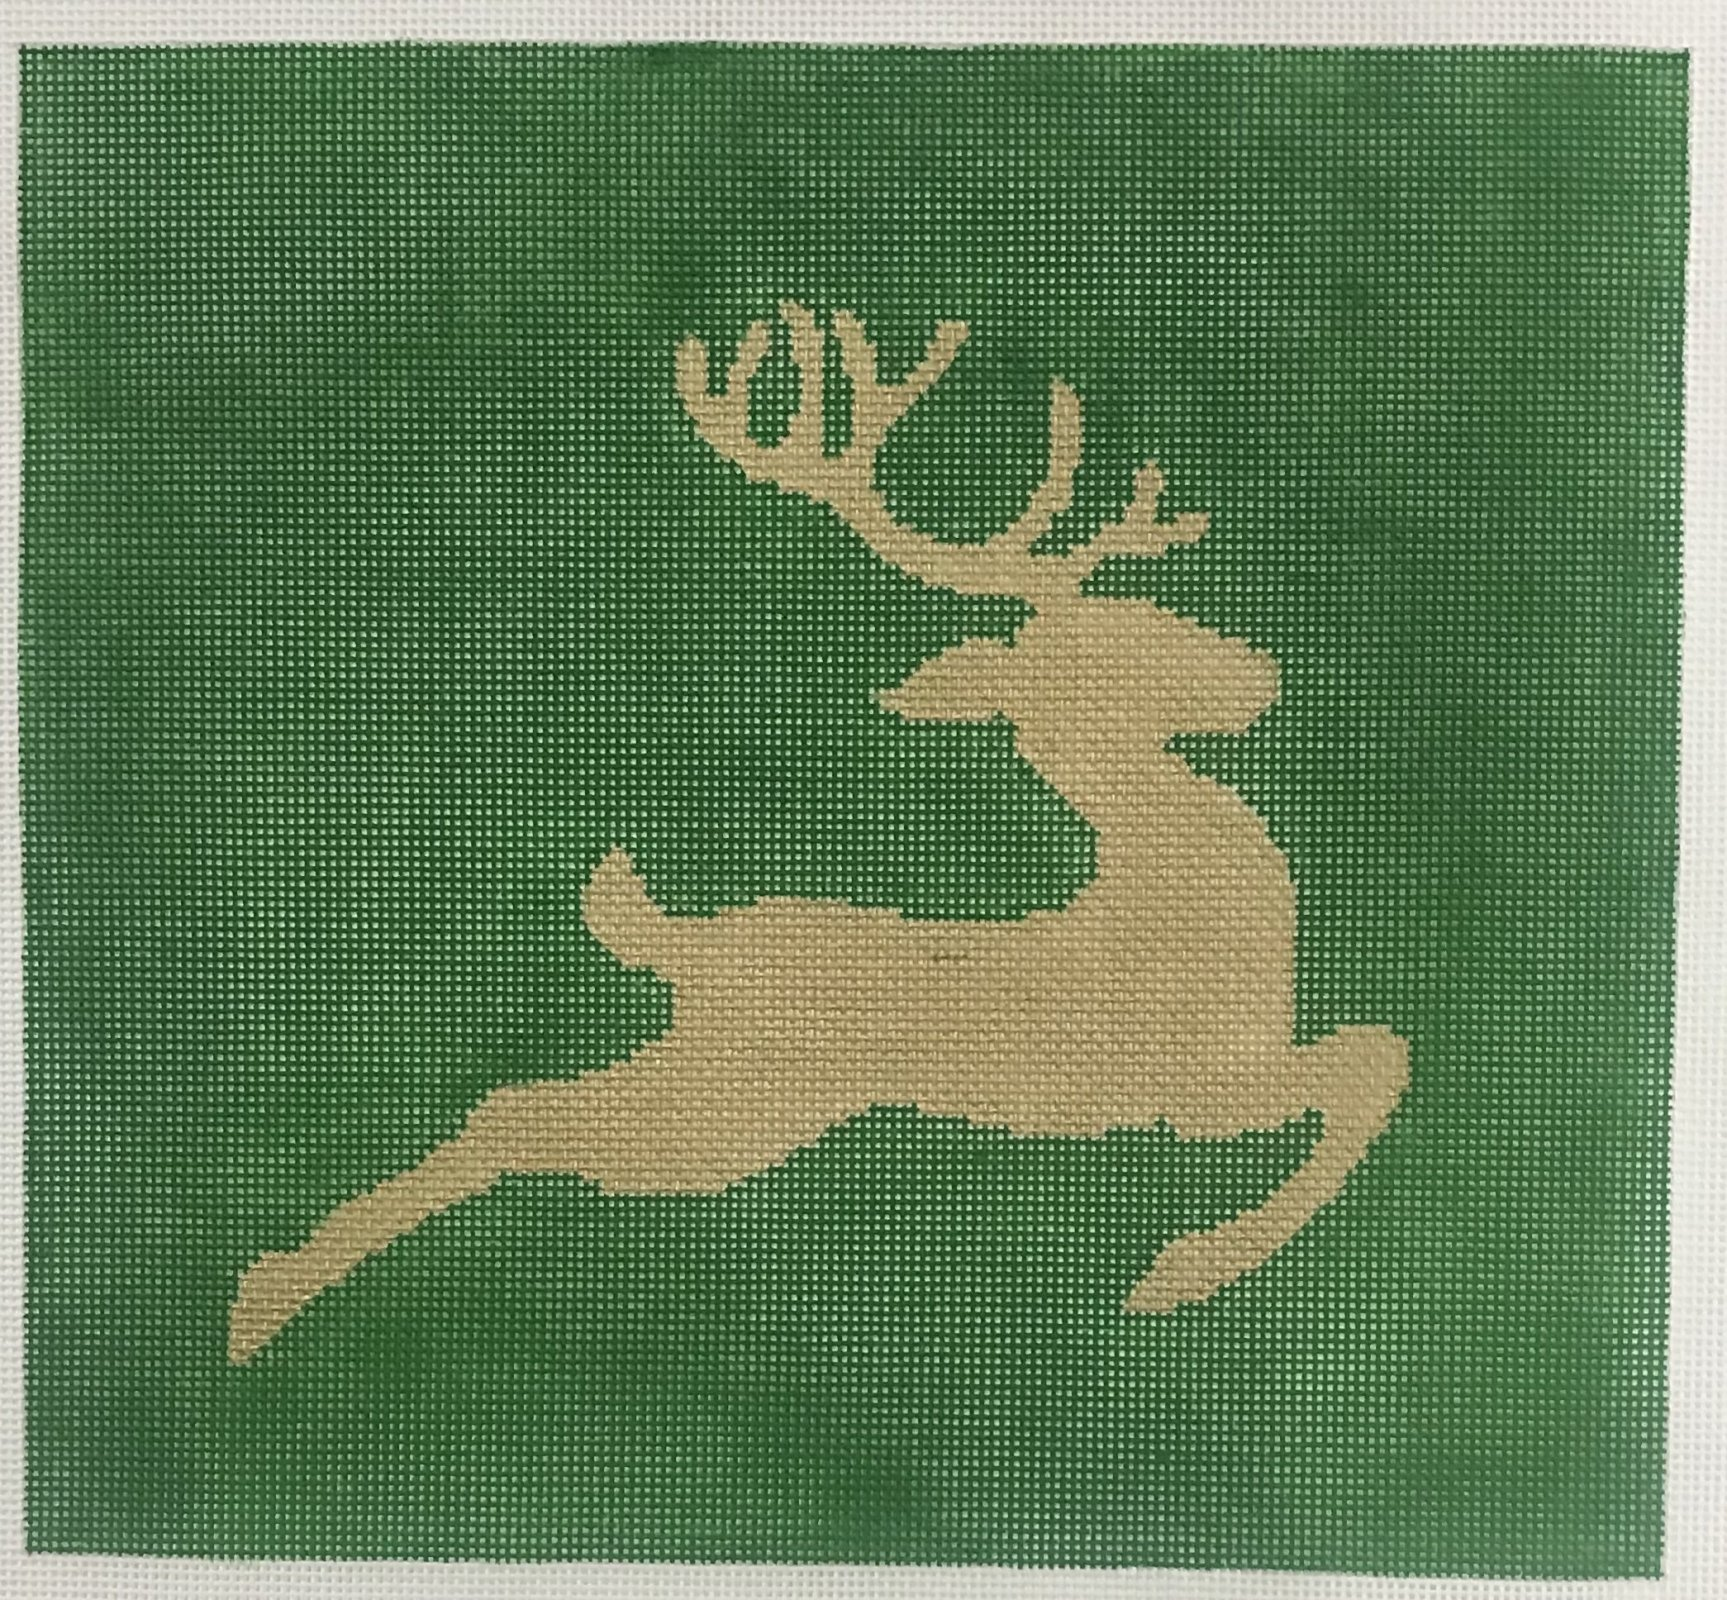 Reindeer Silhouette - Green and Gold